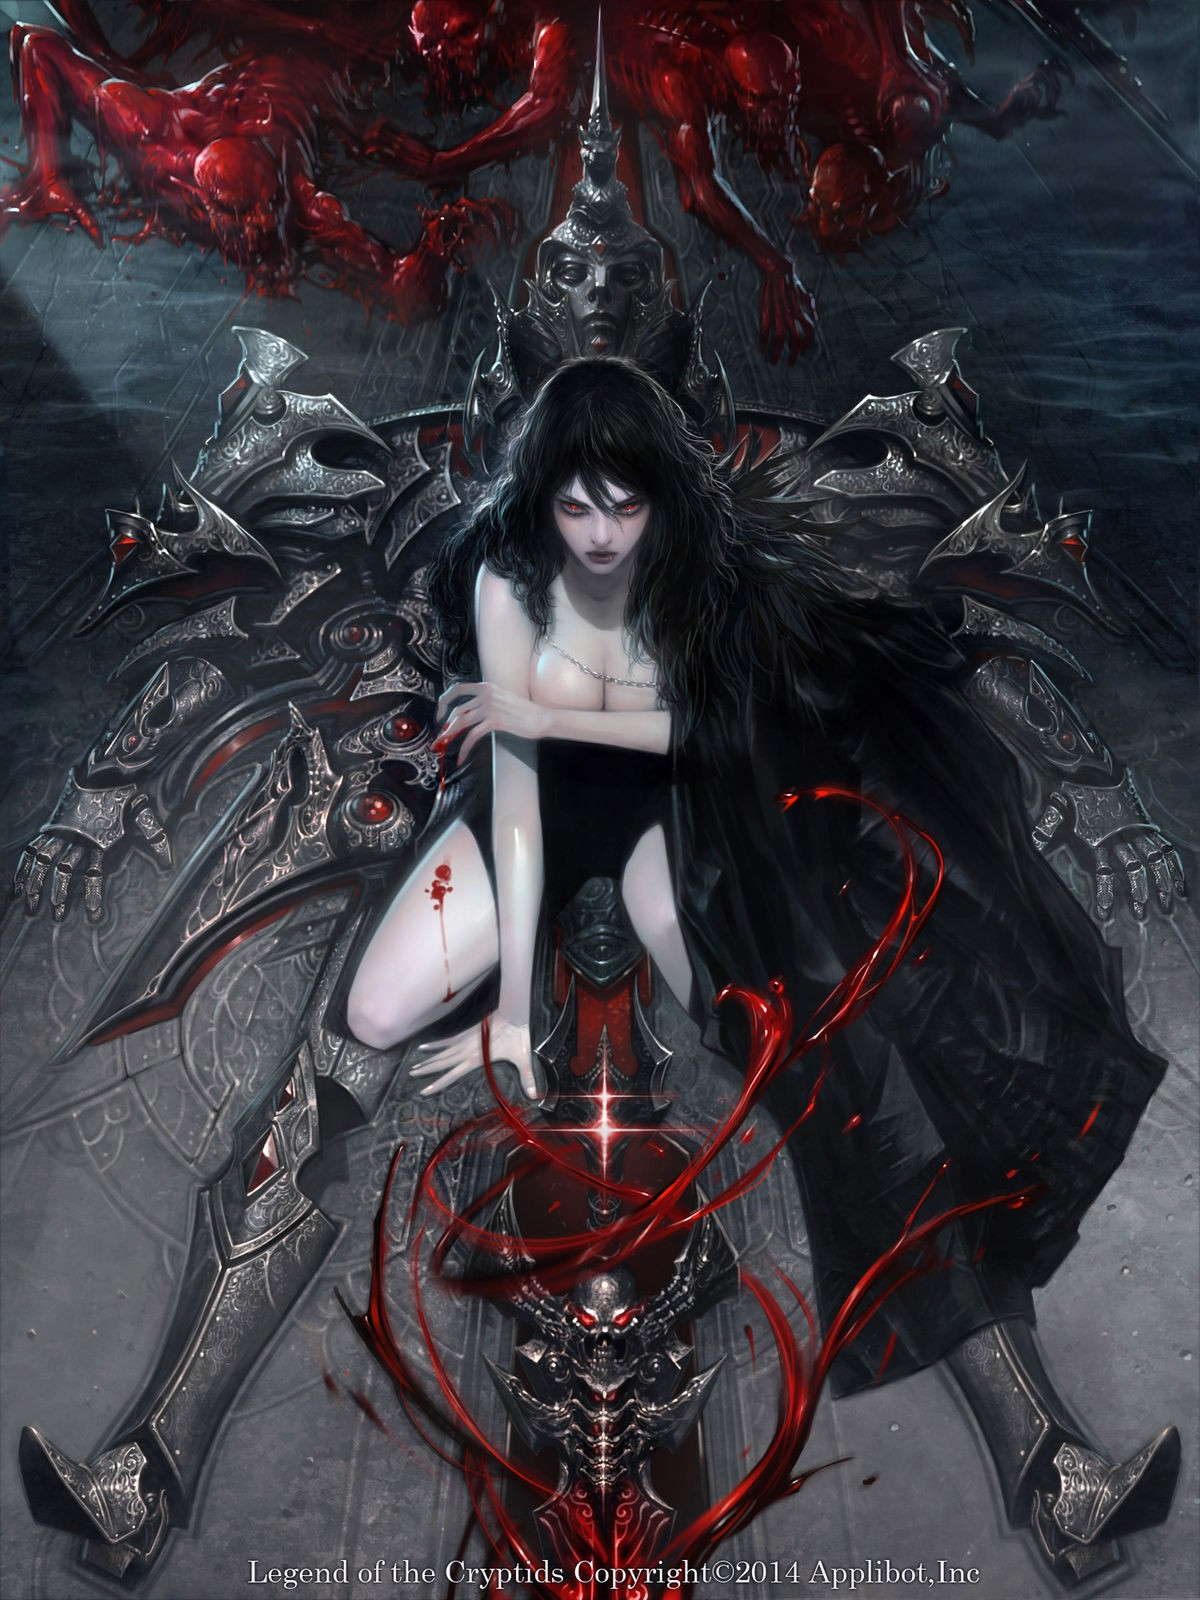 General 1200x1600 fantasy girl dark hair red eyes 2014 (Year) fantasy art Legend of the Cryptids high angle frontal view sword phallic symbol cleavage creature horns legs kneeling cape blood magic vertical portrait display watermarked